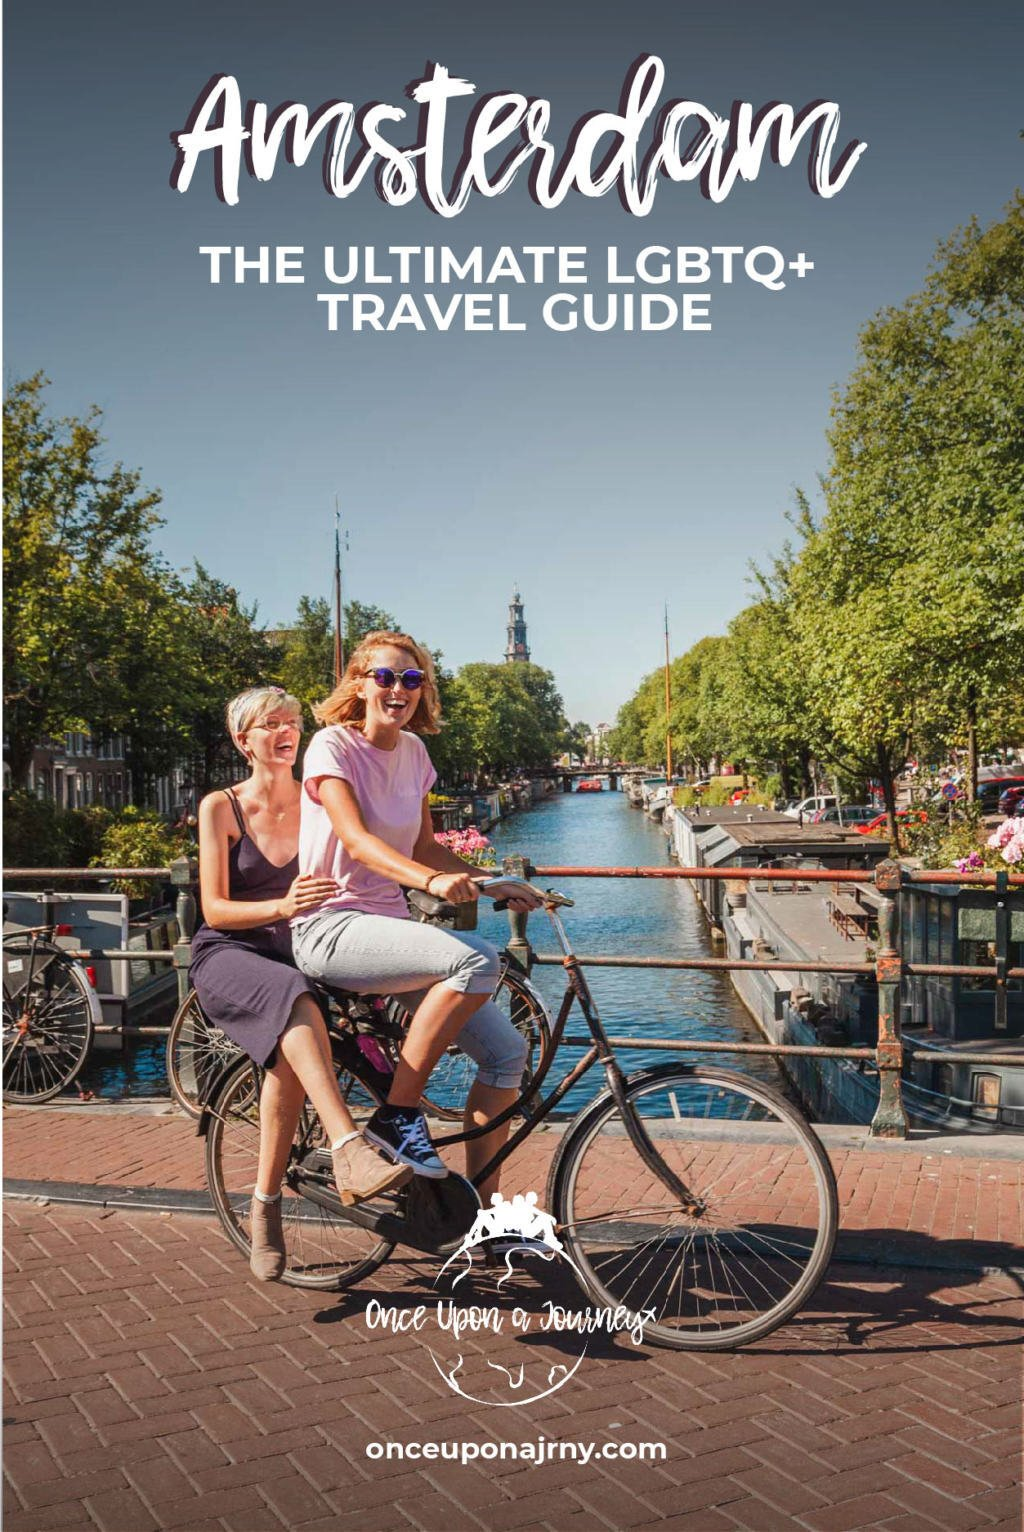 The Ultimate Travel Guide to LGBT+ Amsterdam | Once Upon A Journey LGBT Travel Blog